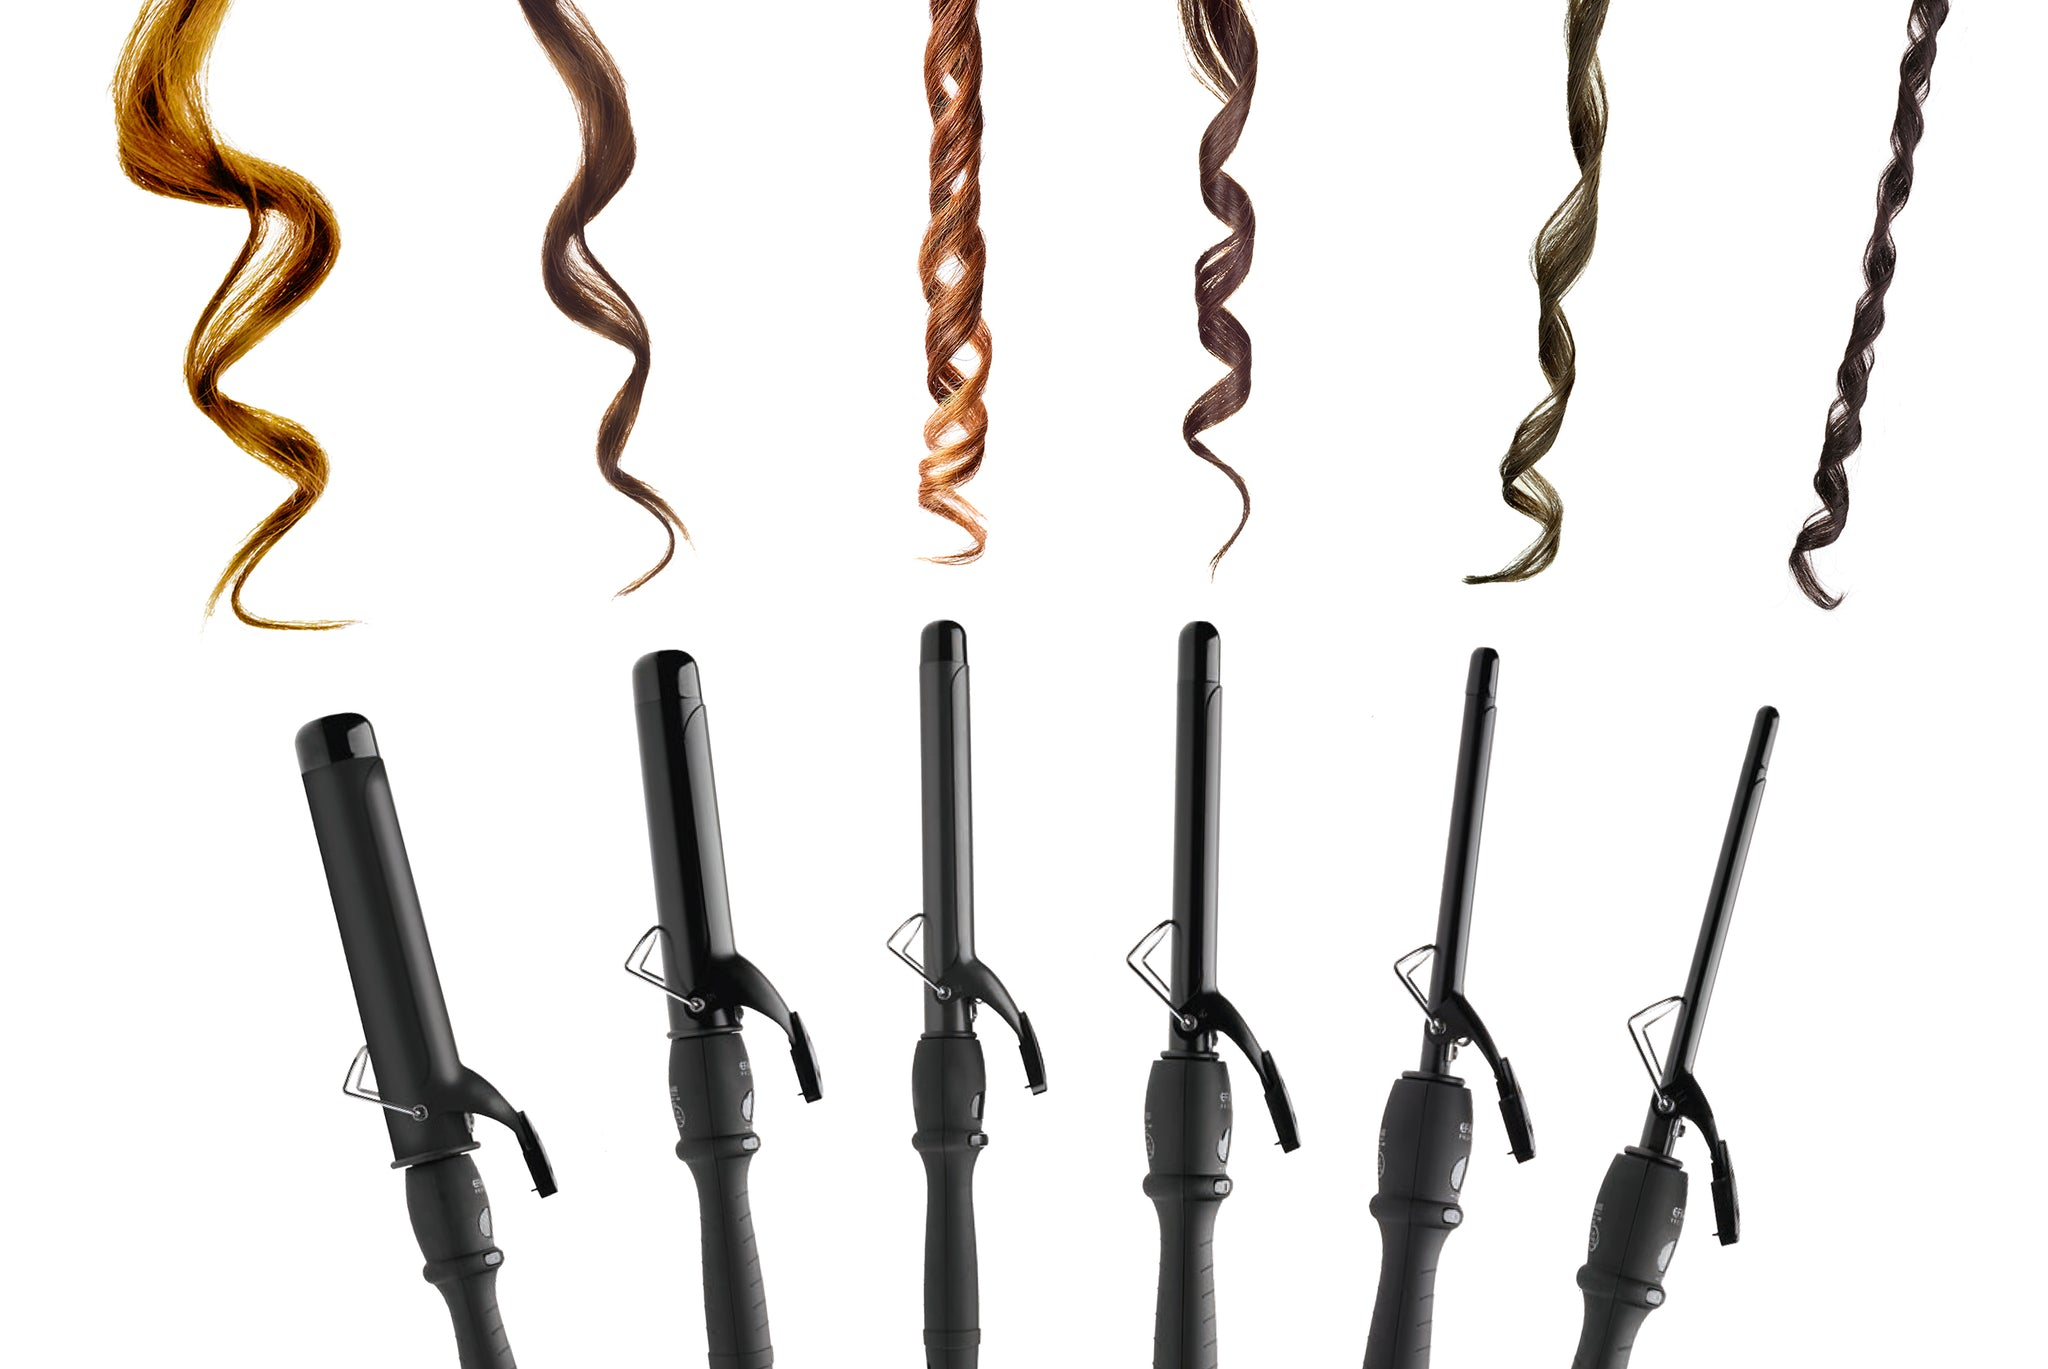 Curls Up Curling Tong- 6 sizes